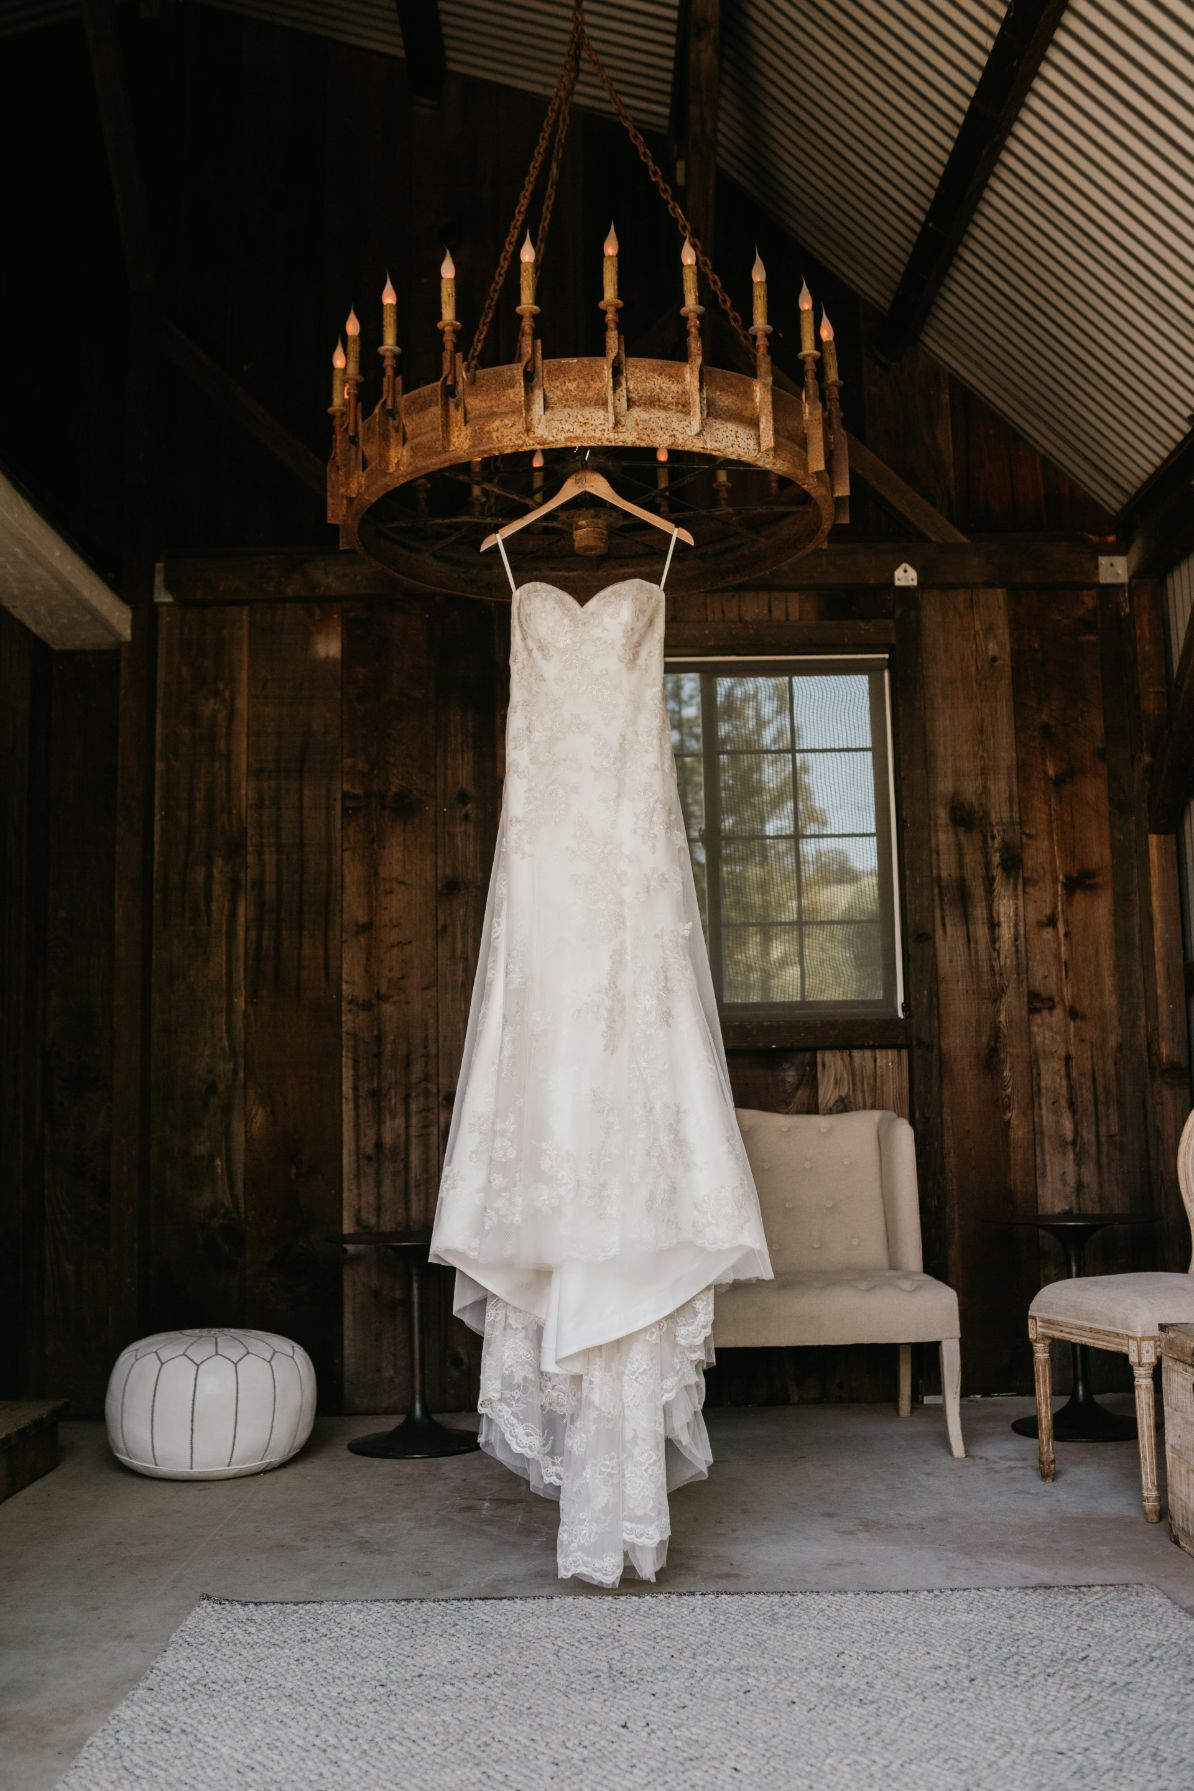 38 photo opportunities rustic mountain house estate weddingi venues northern california